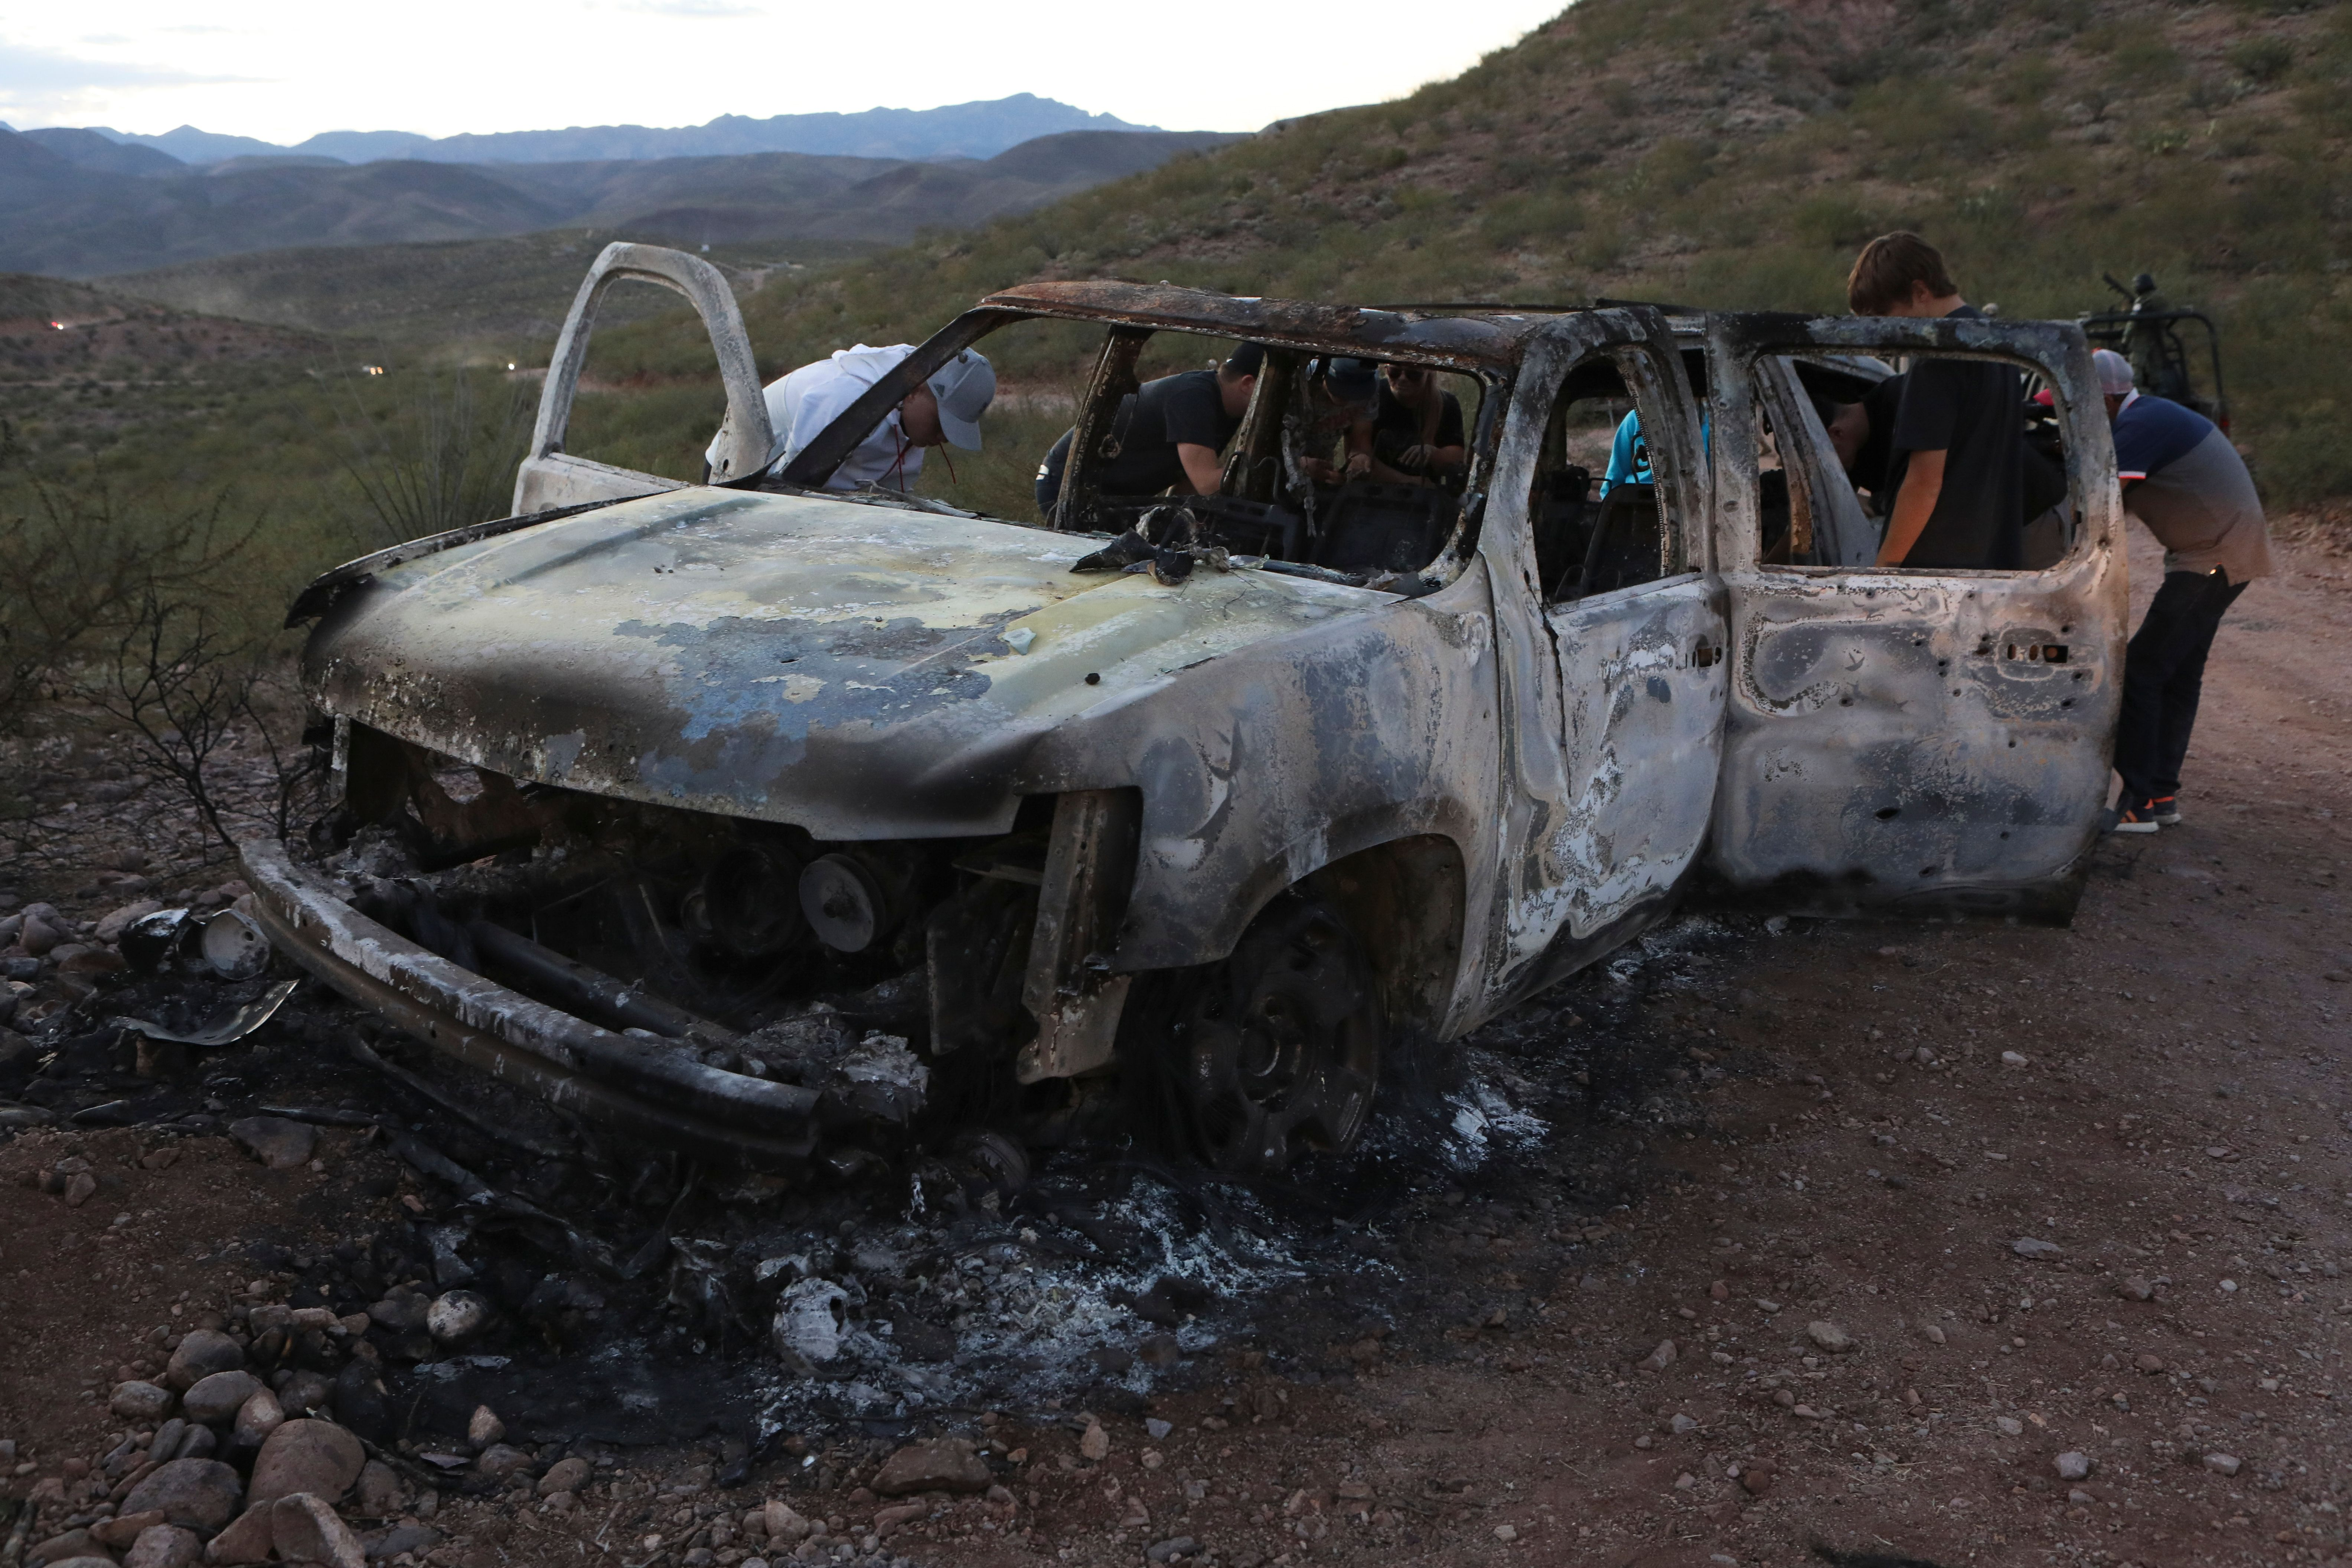 Members of the Lebaron family watch the burned car where part of the nine murdered members of the family were killed and burned during an gunmen ambush on Bavispe, Sonora mountains, Mexico, on November 5, 2019. - US President Donald Trump offered Tuesday to help Mexico